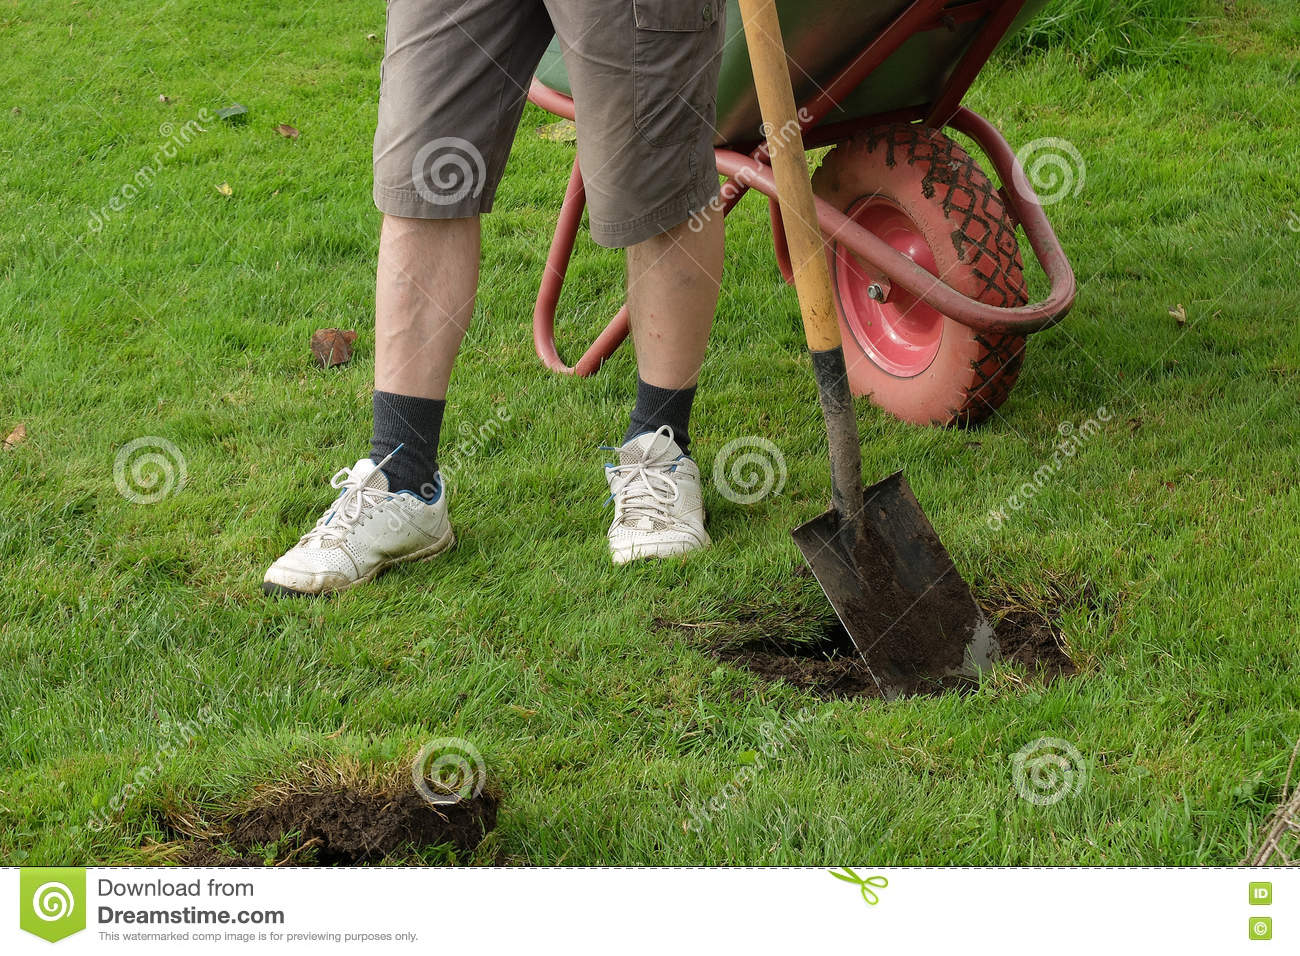 Man digging a hole with a shovel